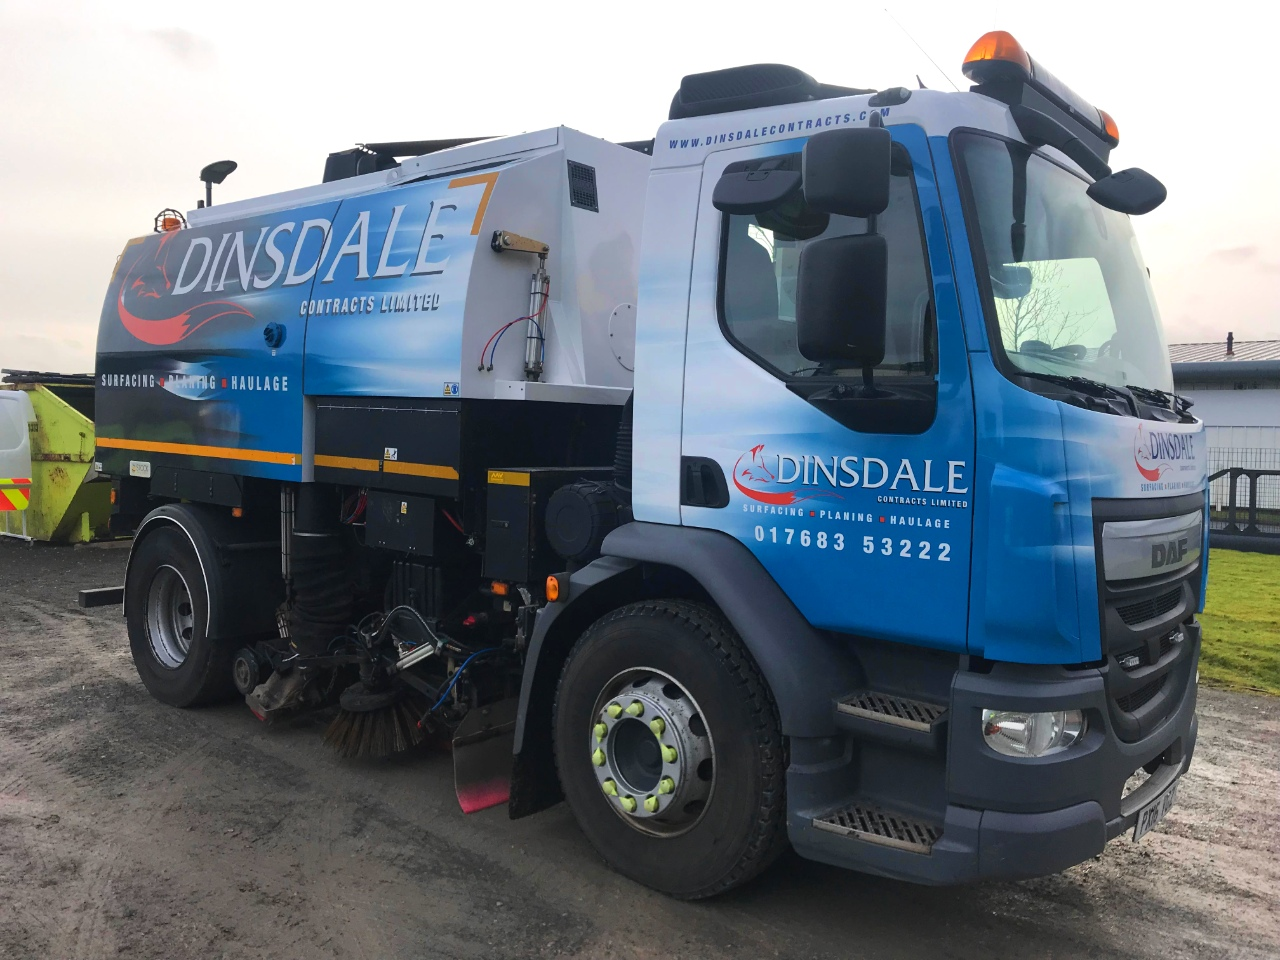 Dinsdale Contracts Truck Wrap Fleet Livery by Ast Transport Branding Penrith Cumbria